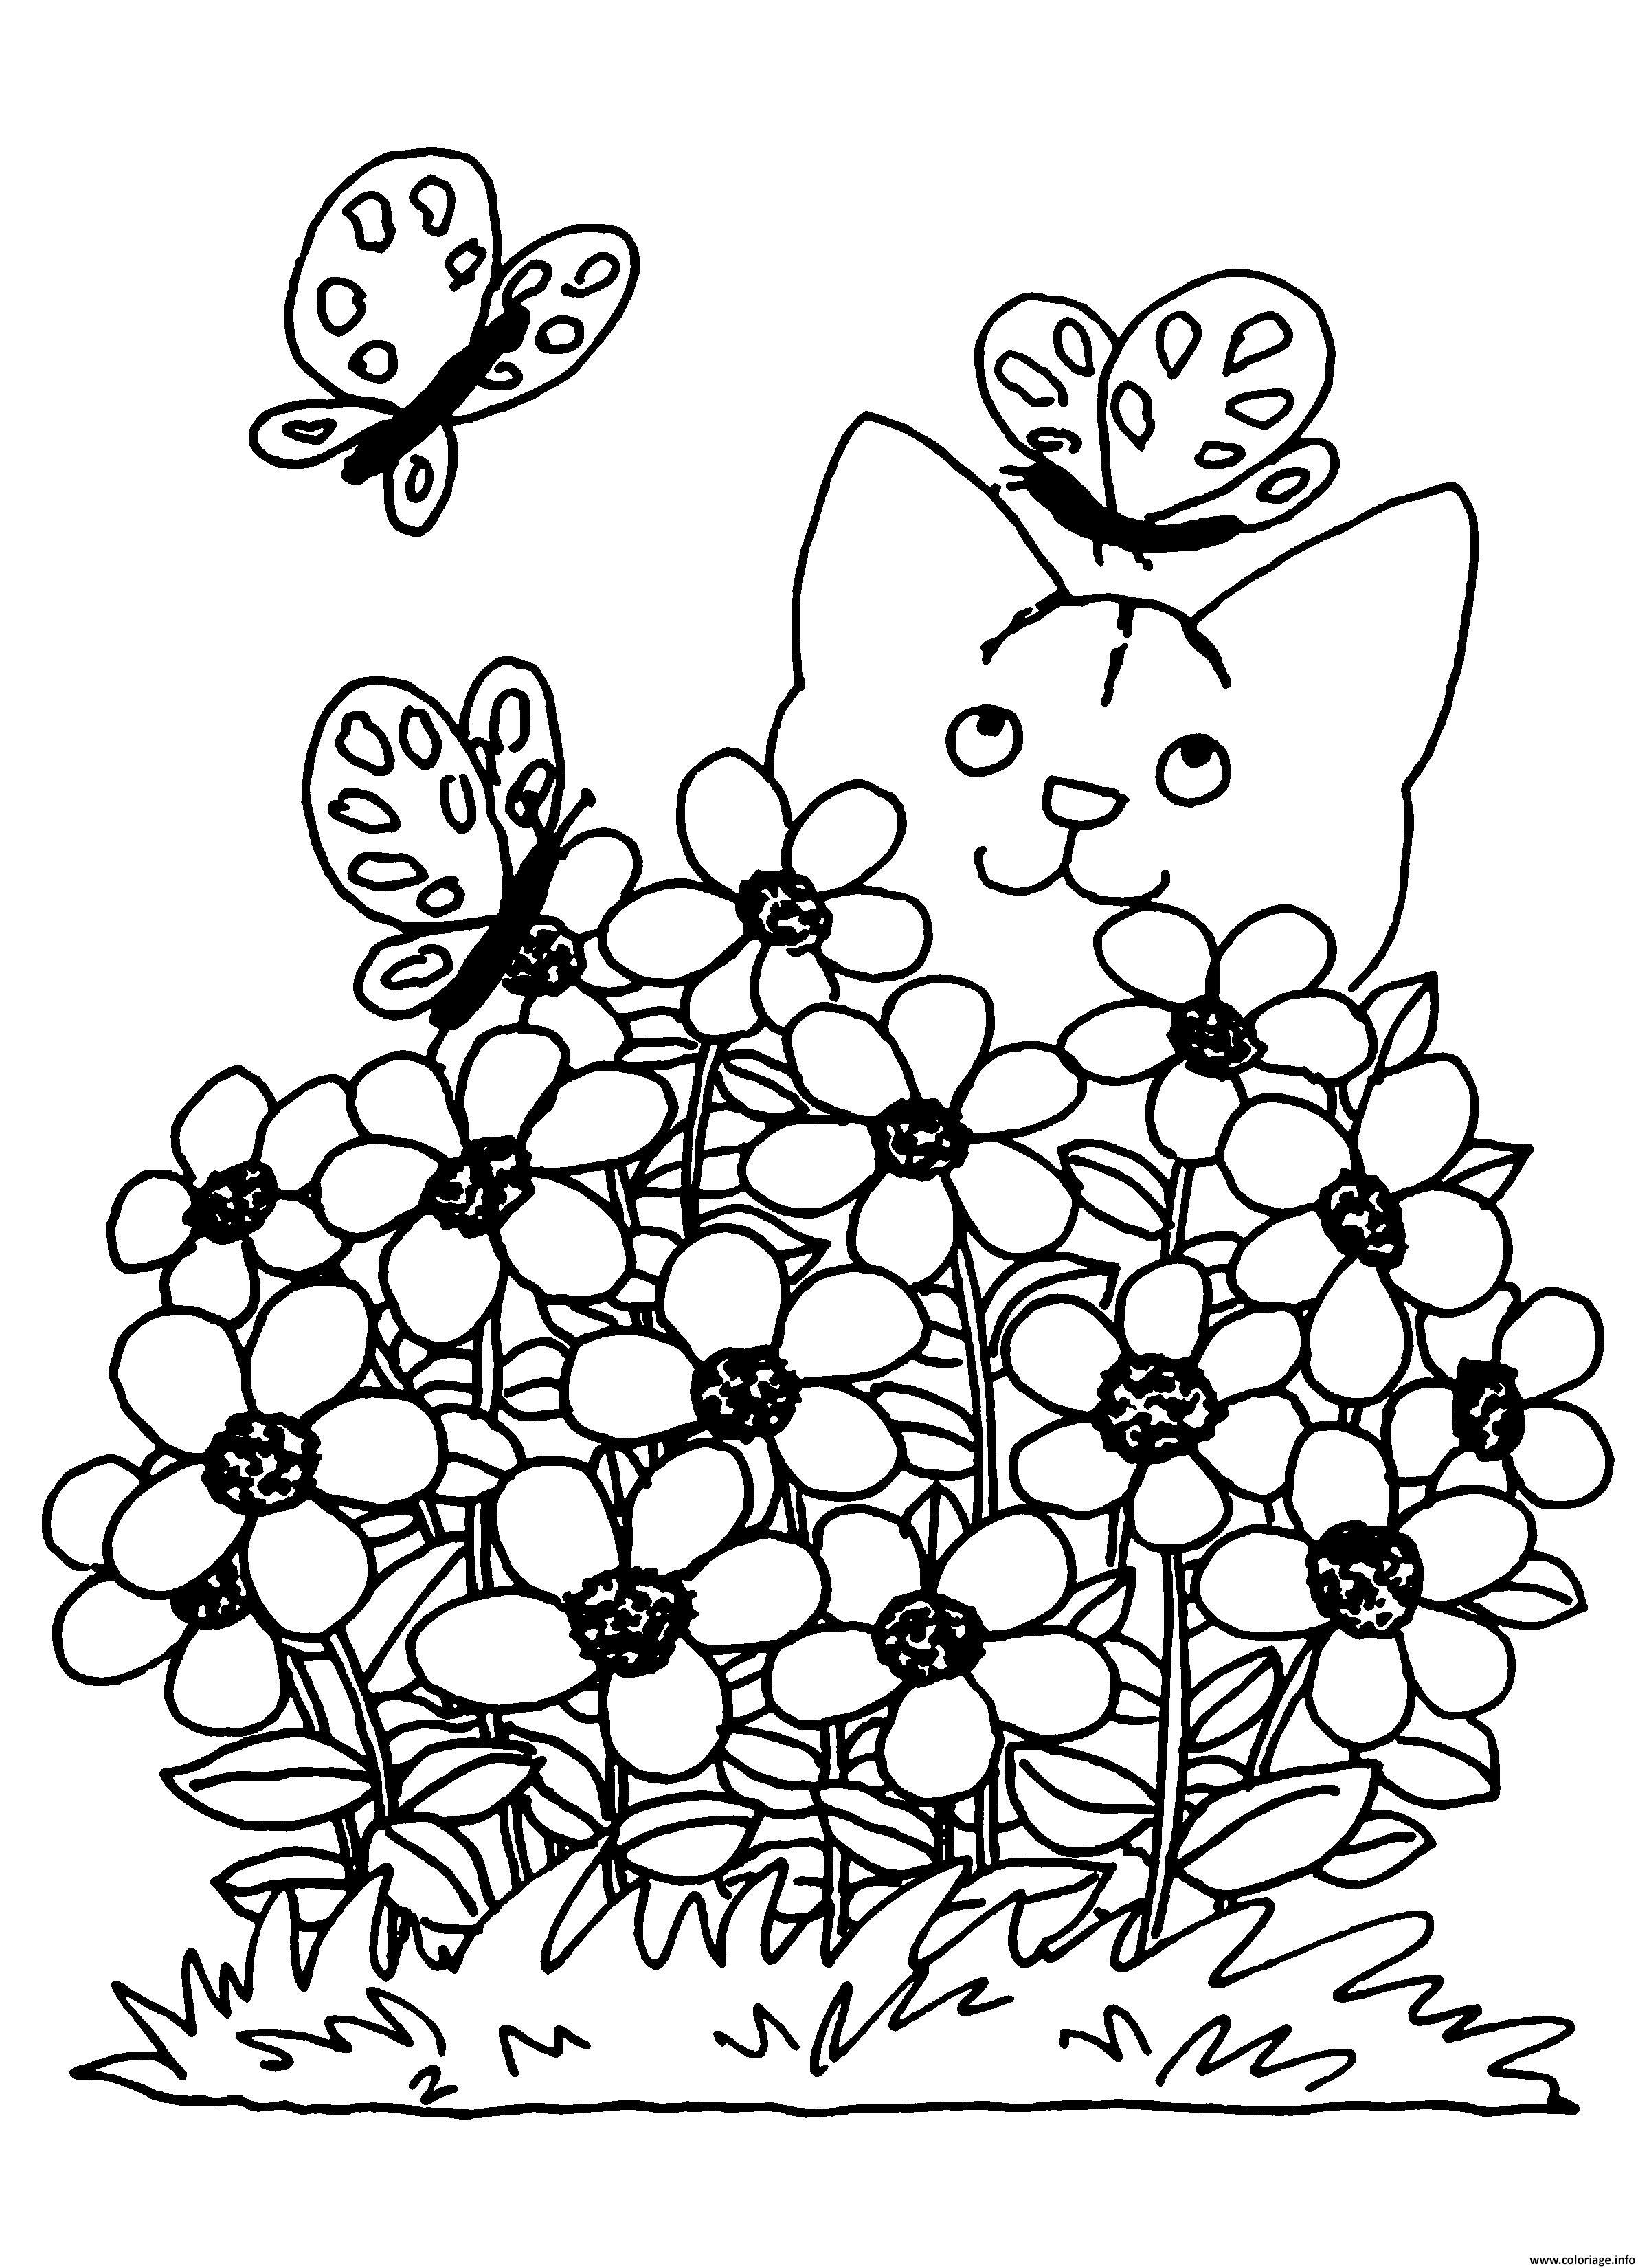 Coloriage printemps chat fleurs dessin - Image du printemps a colorier ...